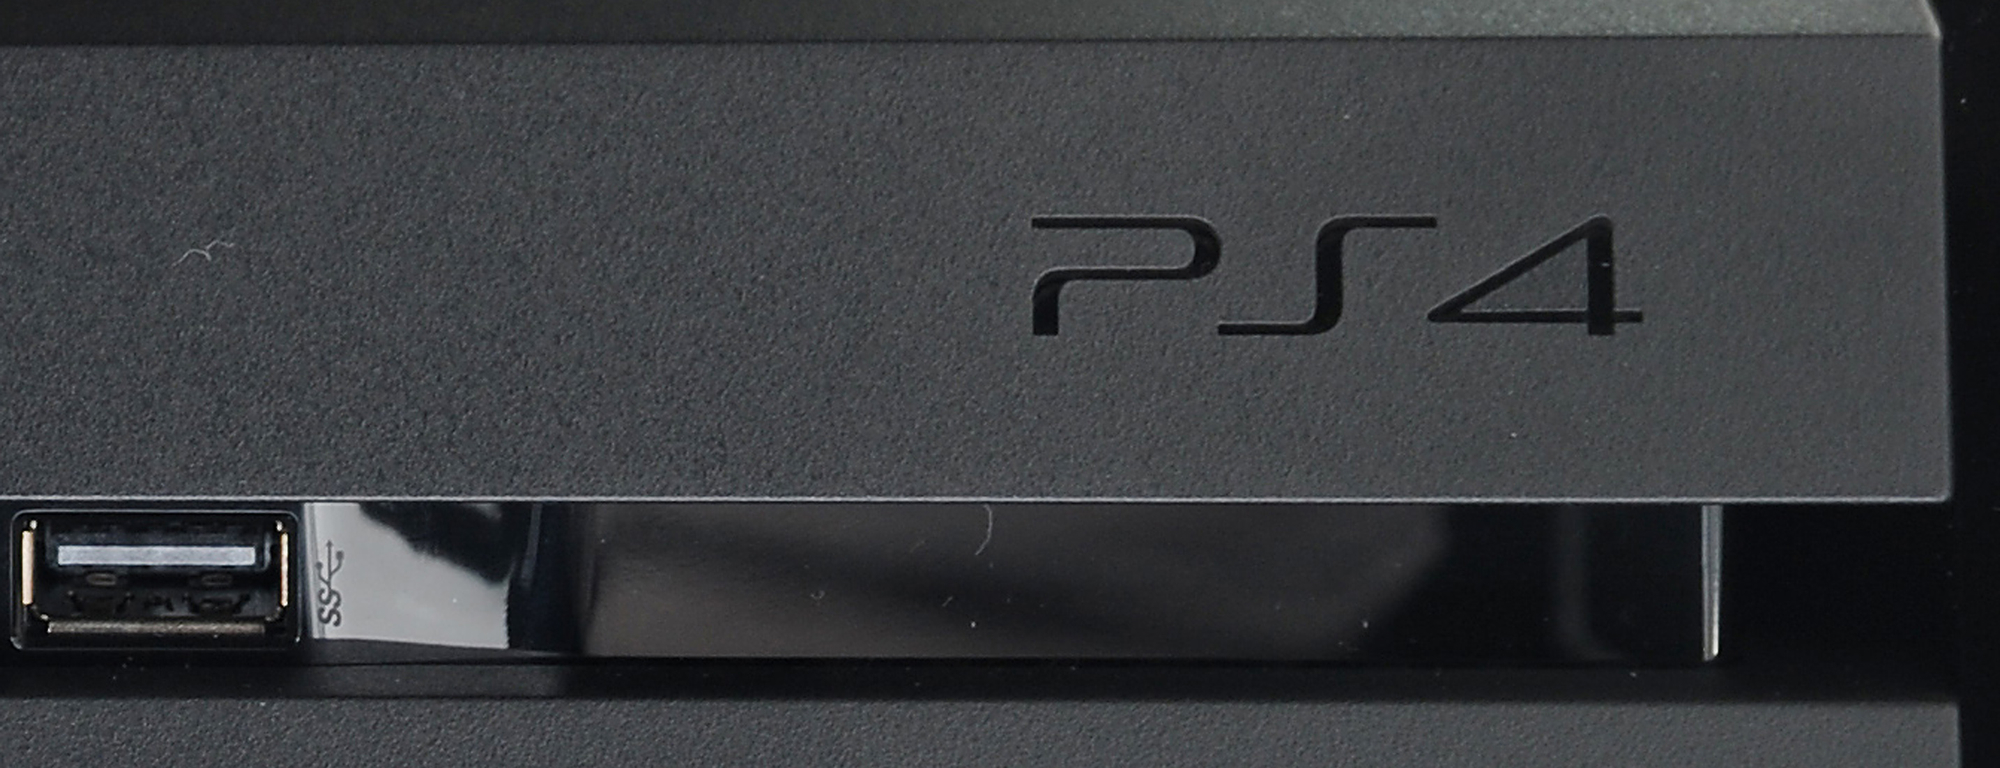 Sony's PlayStation 4 will go on sale in 5 Asian countries in December, months earlier than Japan